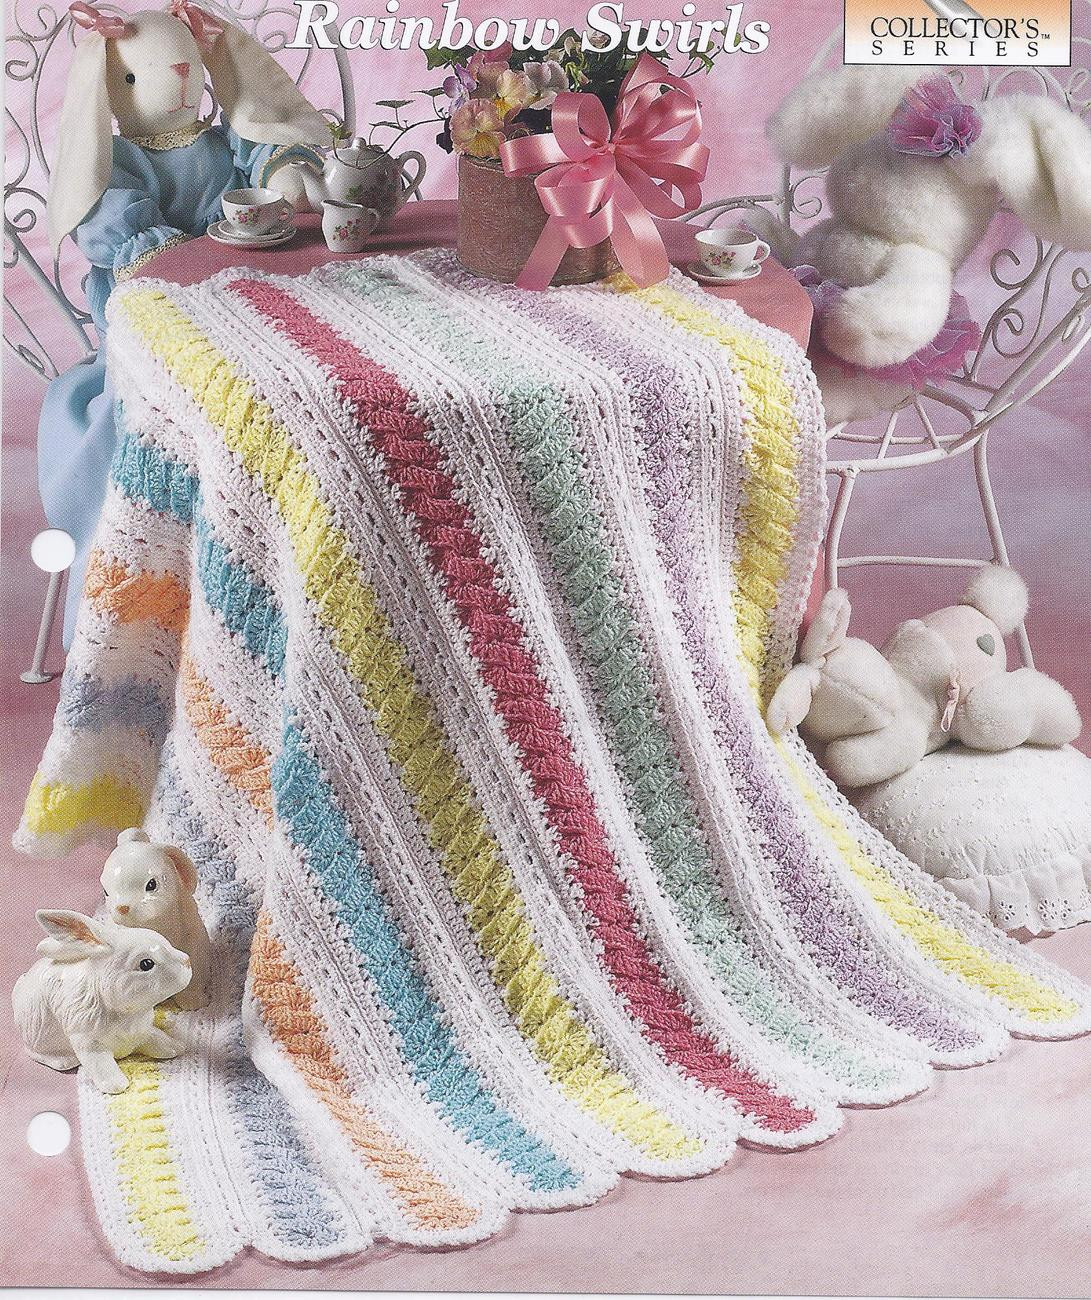 Baby Afghan Crochet Patterns Unique Rainbow Swirls Baby Afghan Crochet Pattern Baby & Children Of Beautiful 49 Photos Baby Afghan Crochet Patterns